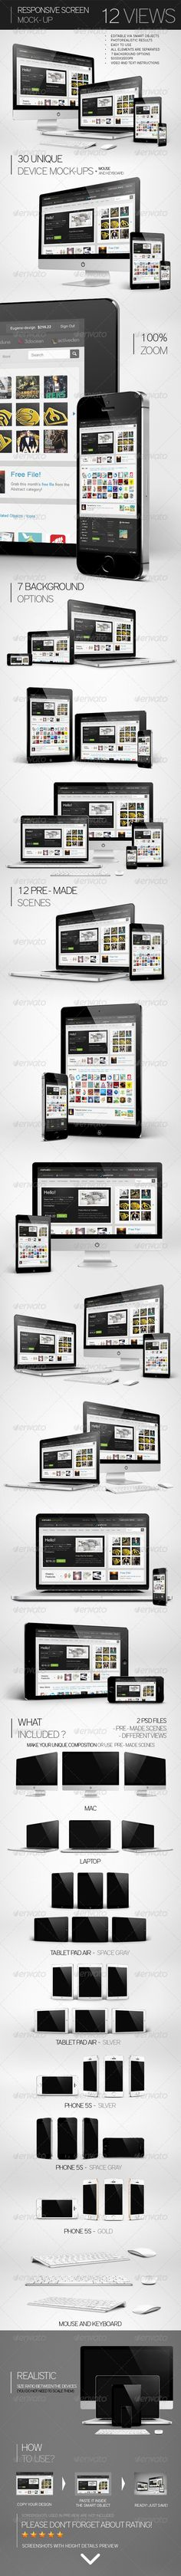 Responsive Screen Mock-Up :  Check out this great #graphicriver item 'Responsive Screen Mock-Up' http://graphicriver.net/item/responsive-screen-mockup/7414672?ref=25EGY